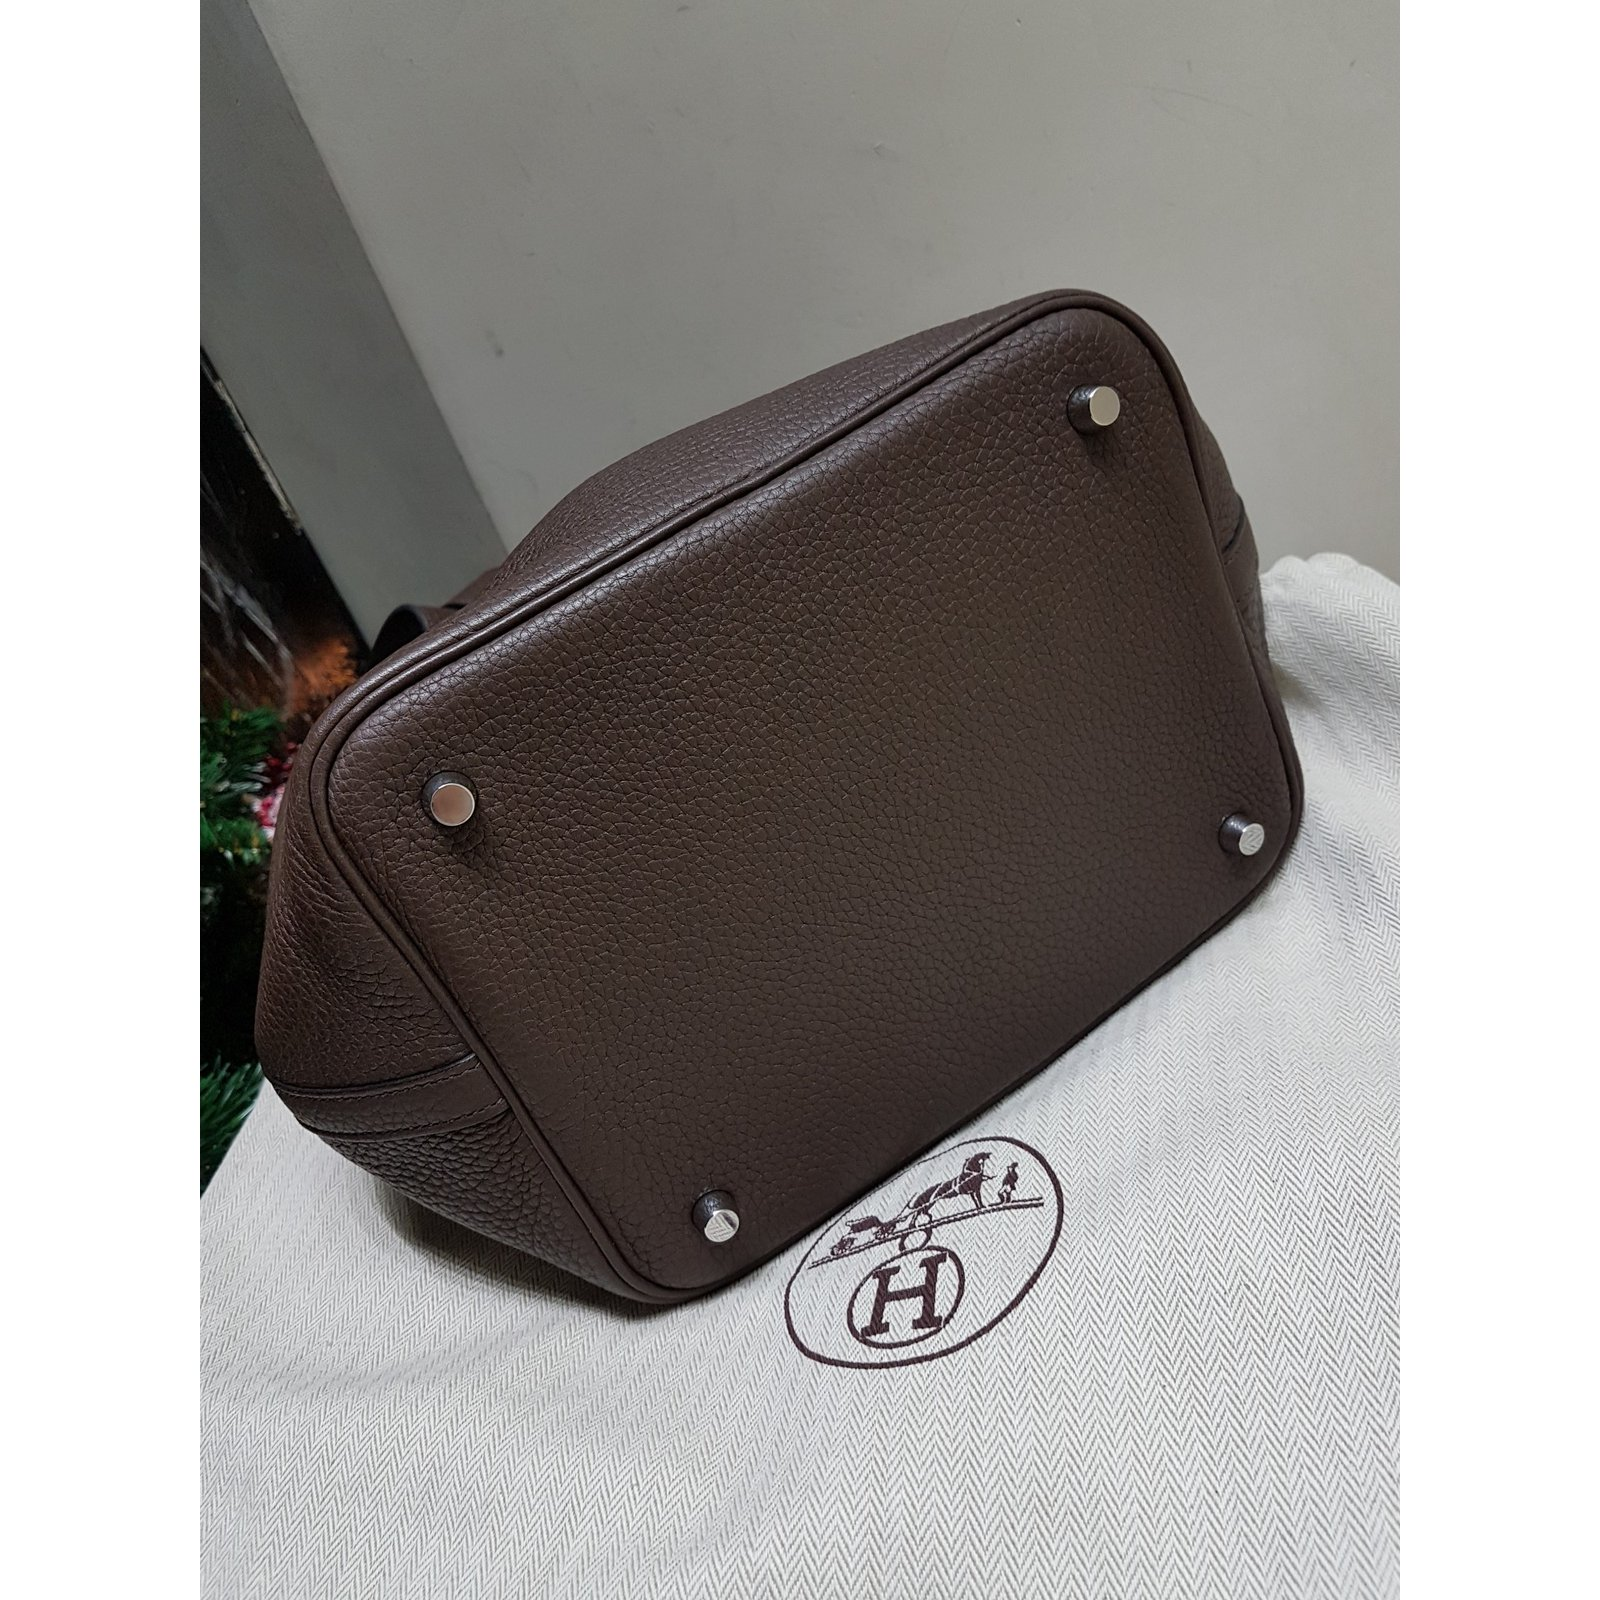 6b6995584924 ... usa leather bag hermès hermes picotin handbags leather brown ref.55141 joli  closet a4882 2c0ca